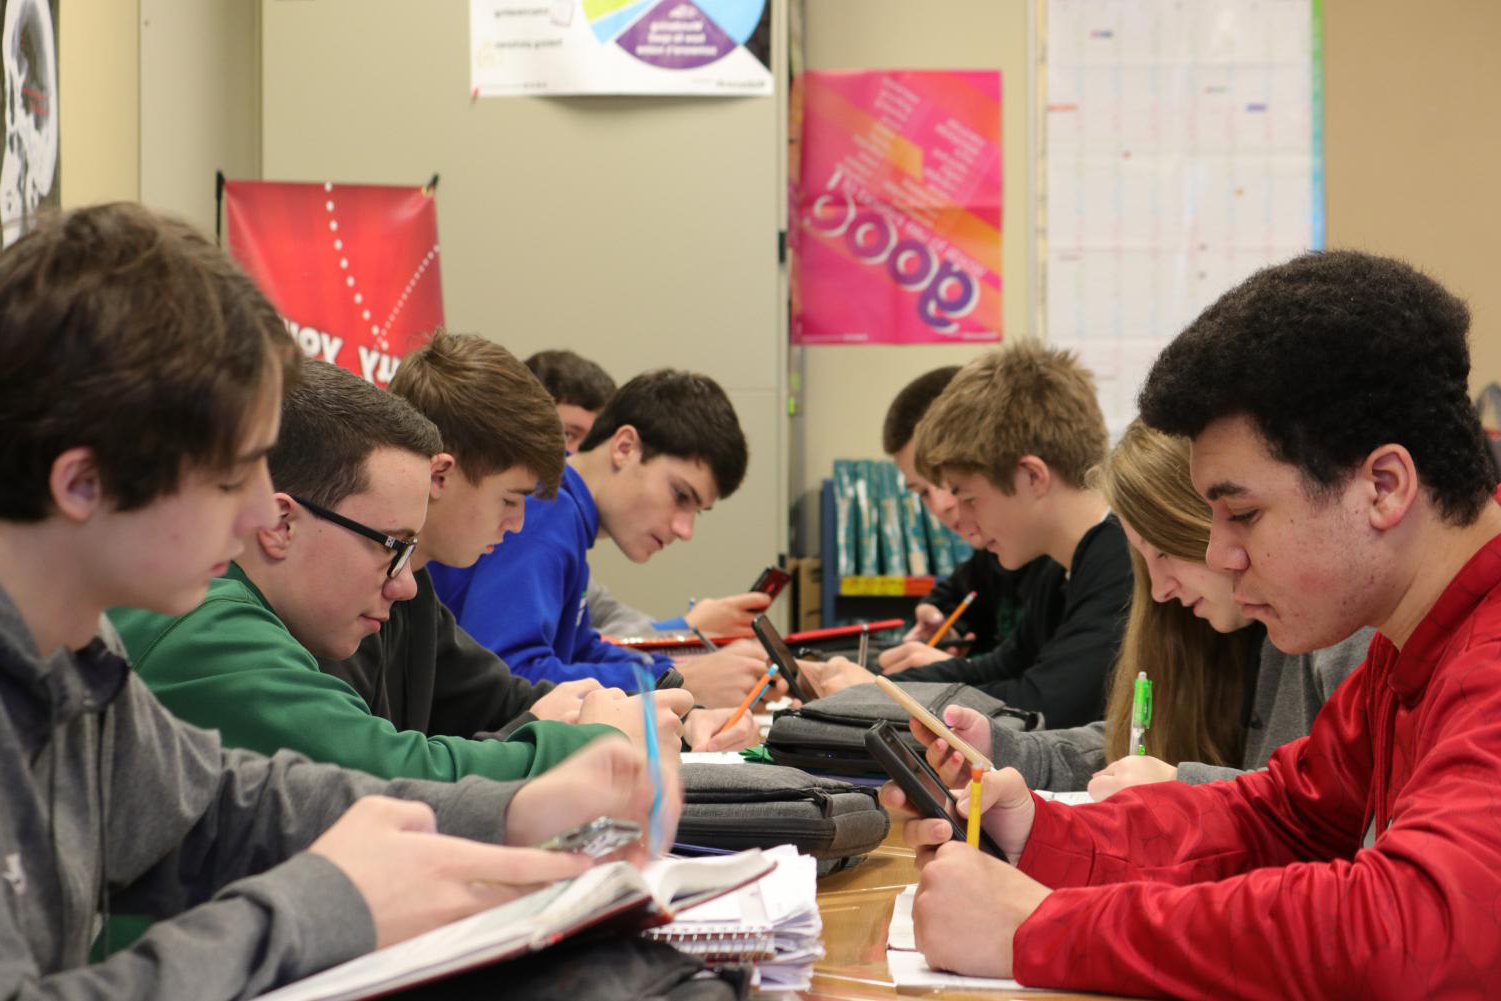 Students in 希拉·穆尔's courses use cell phones as an extension of their Chromebooks. Students are often asked to use both forms as they seek to become competent in multiple aspects of technology.